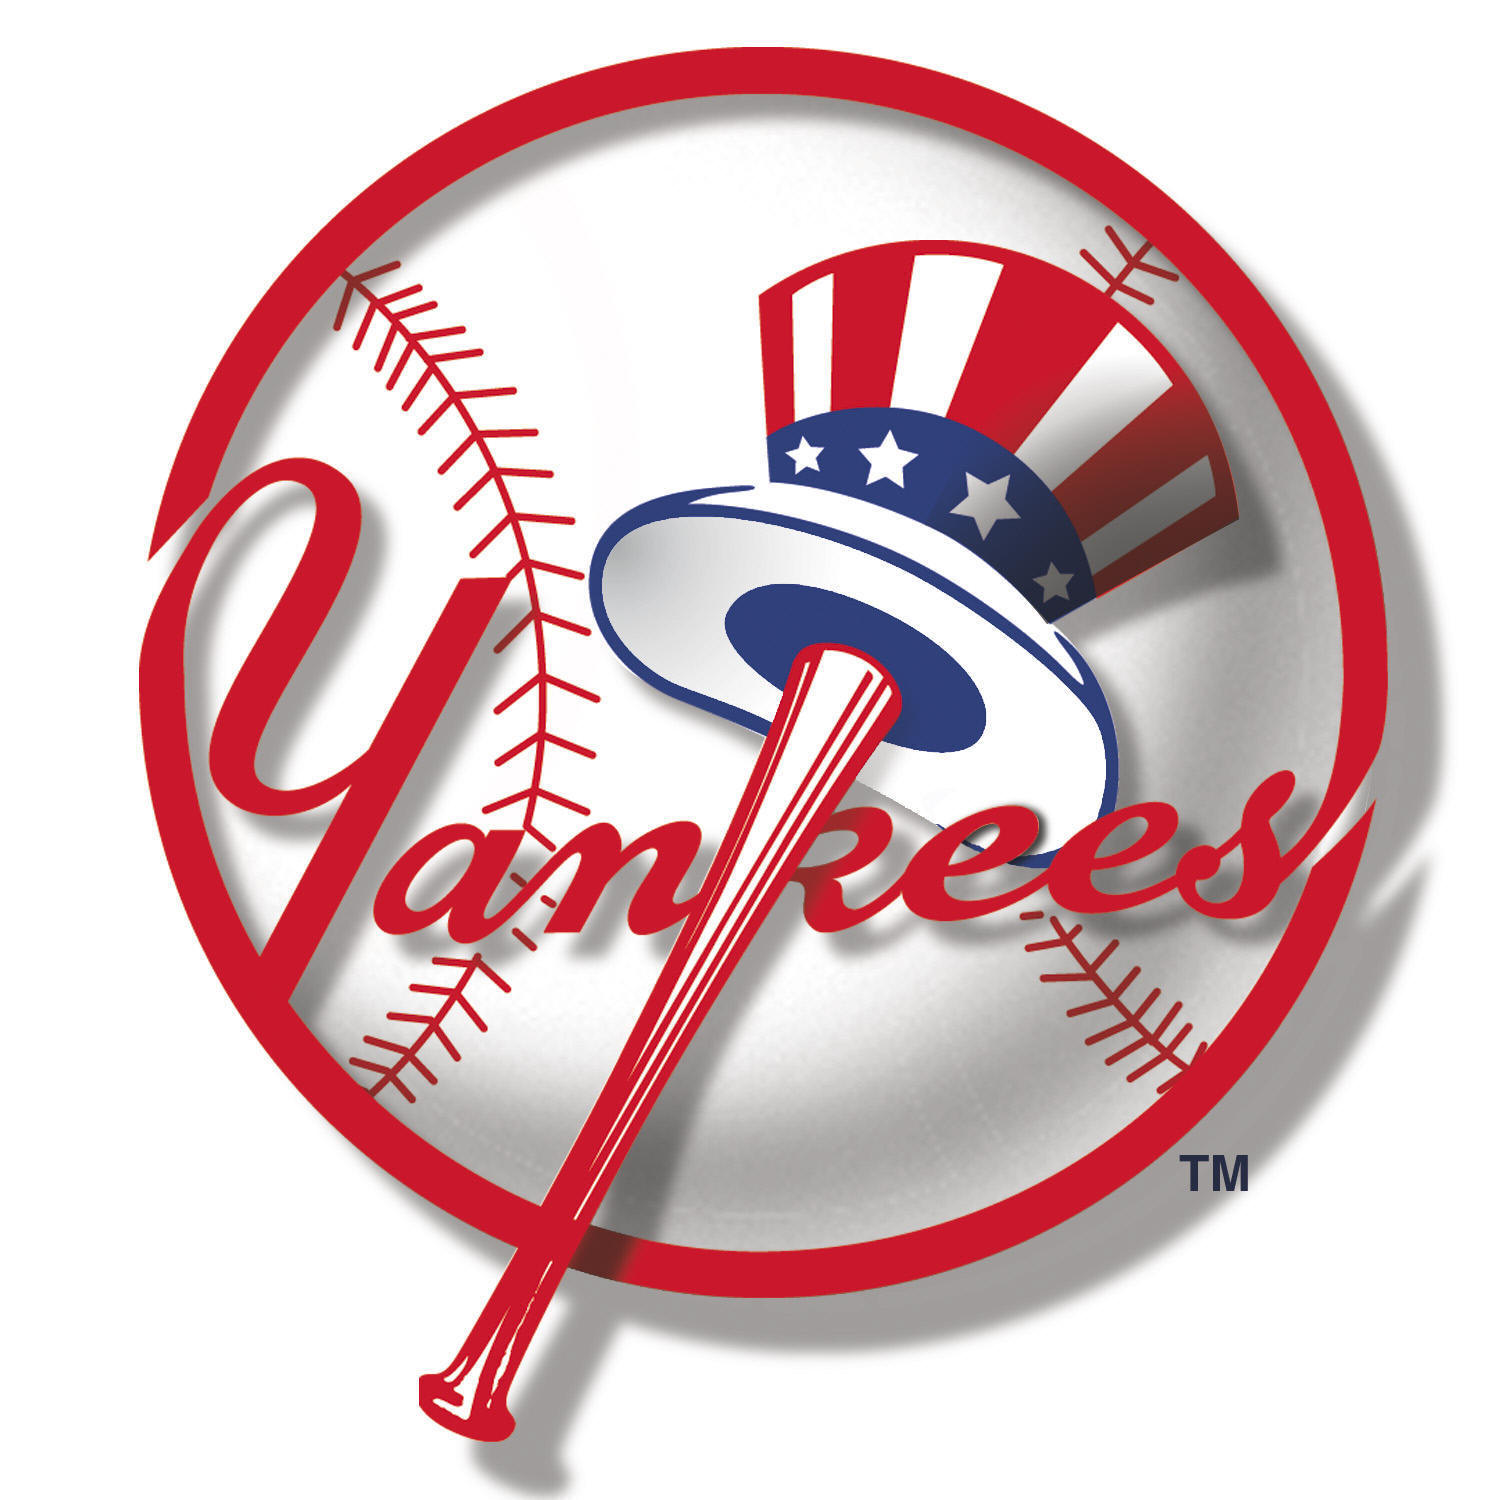 Presale Codes to purchase tickets for New York Yankees 2018 Postseason games